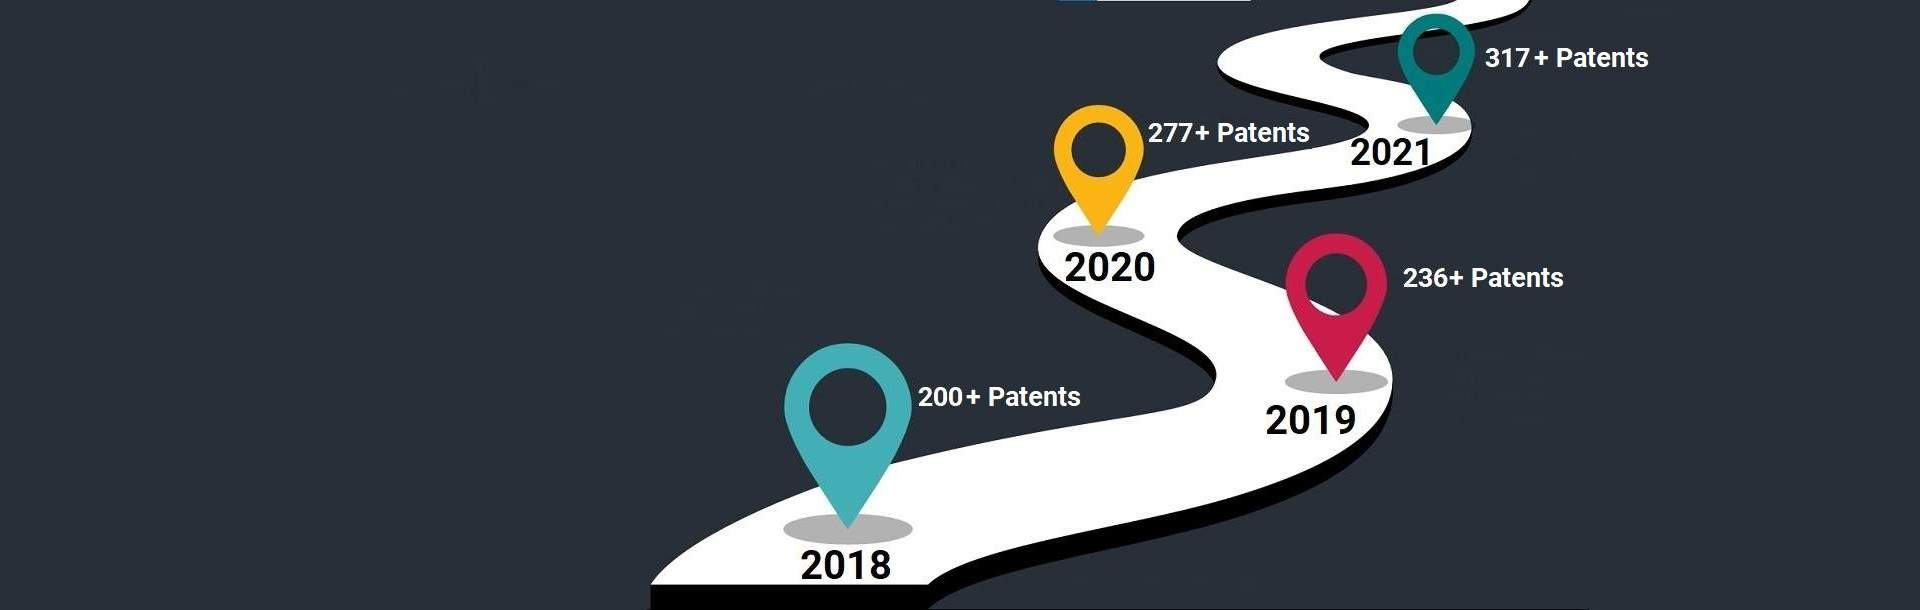 300+ Patents Achieved